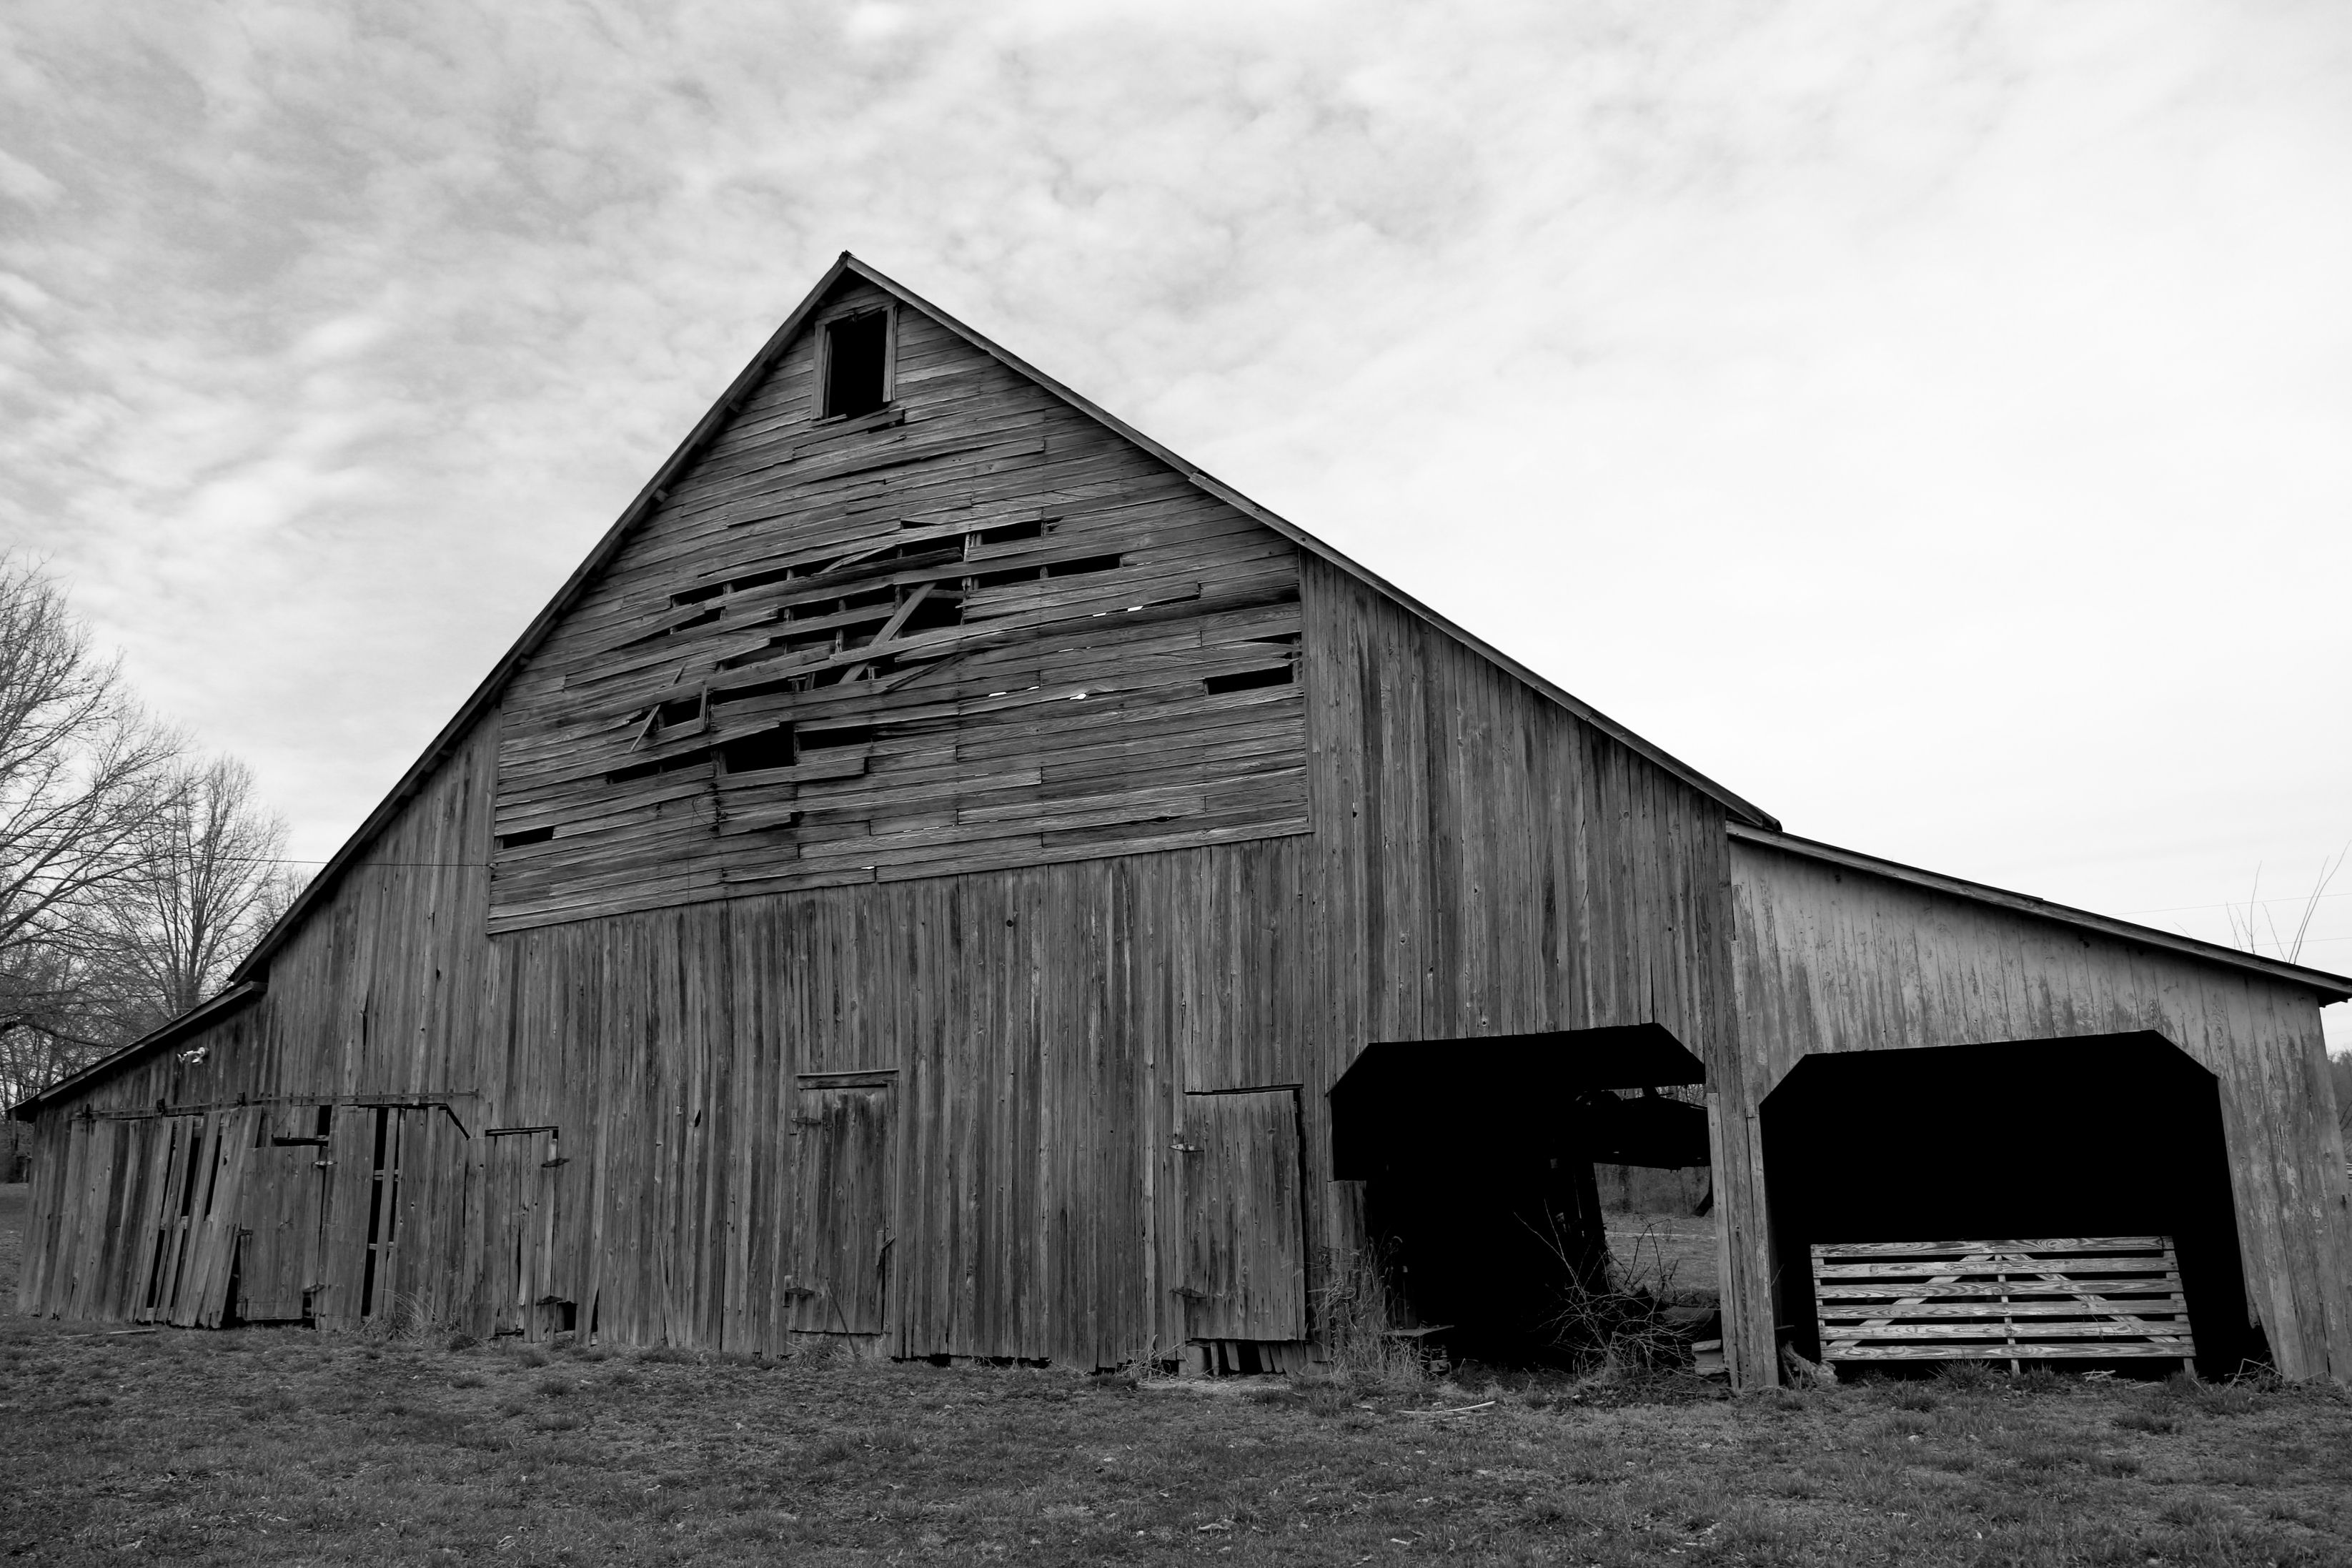 Barn in Southern Illinois near Rend Lake and Wayne